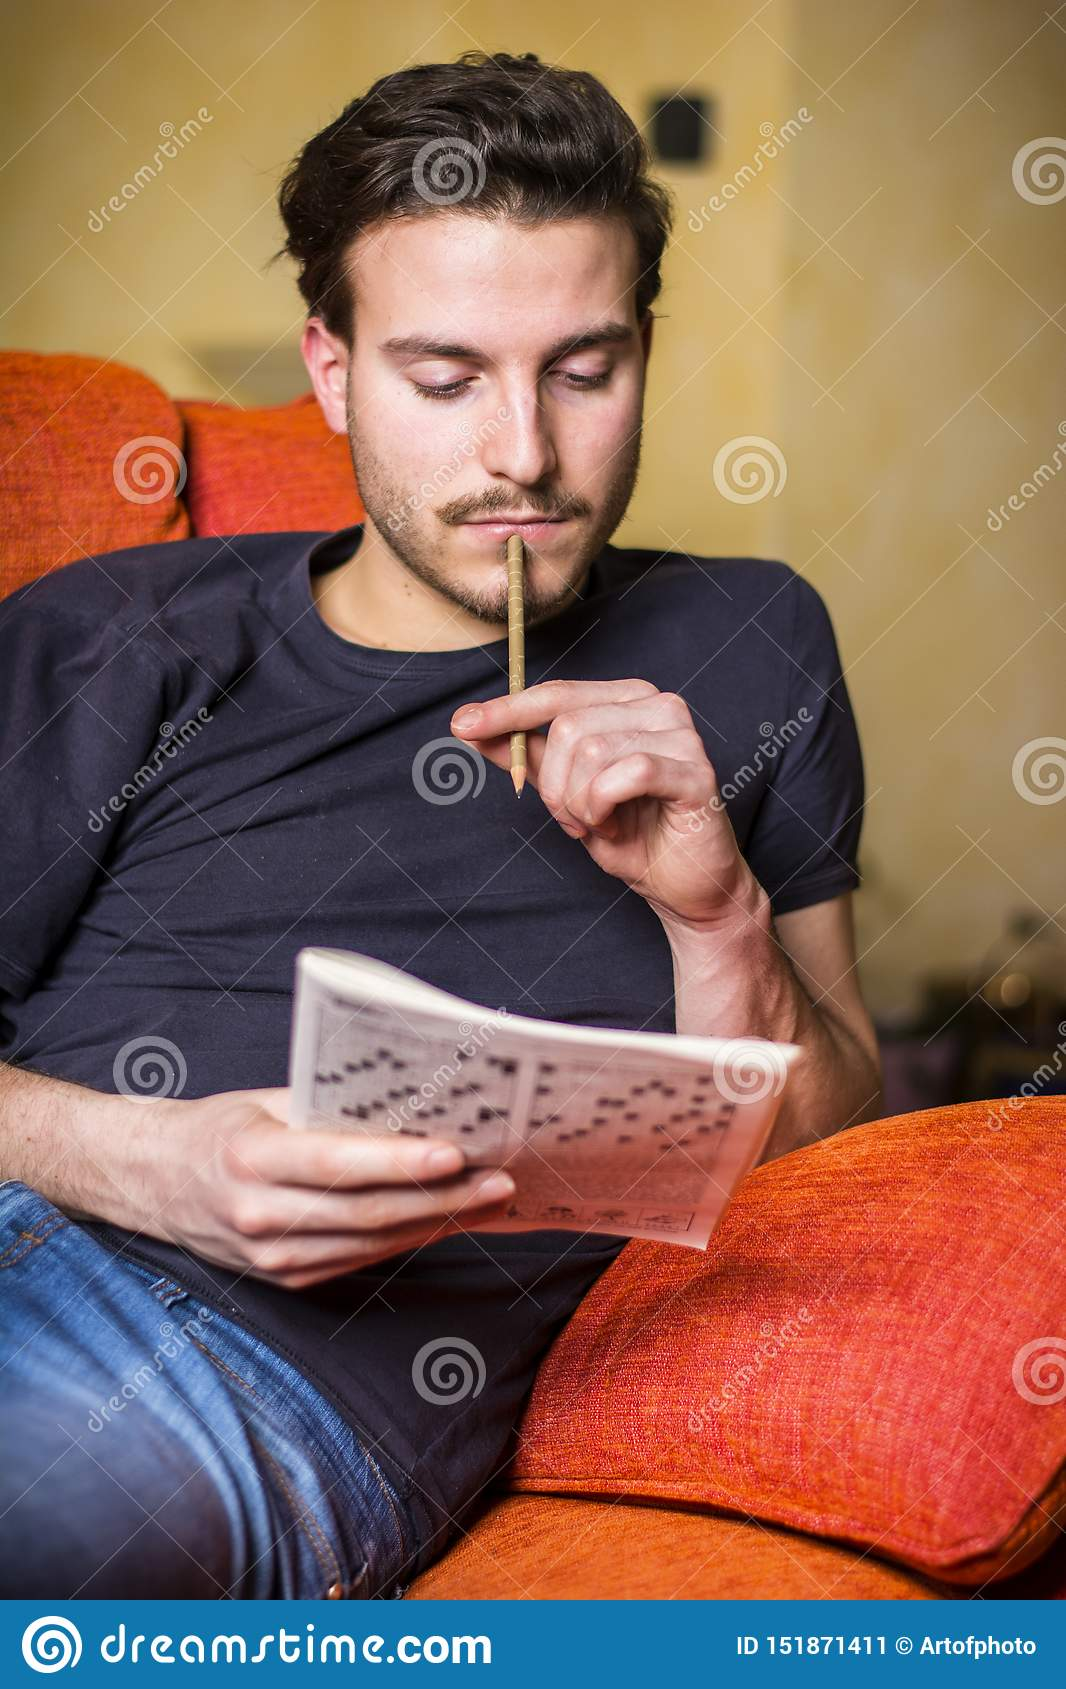 Young Man Sitting Doing A Crossword Puzzle Stock Image Image Of Recreation Activity 151871411